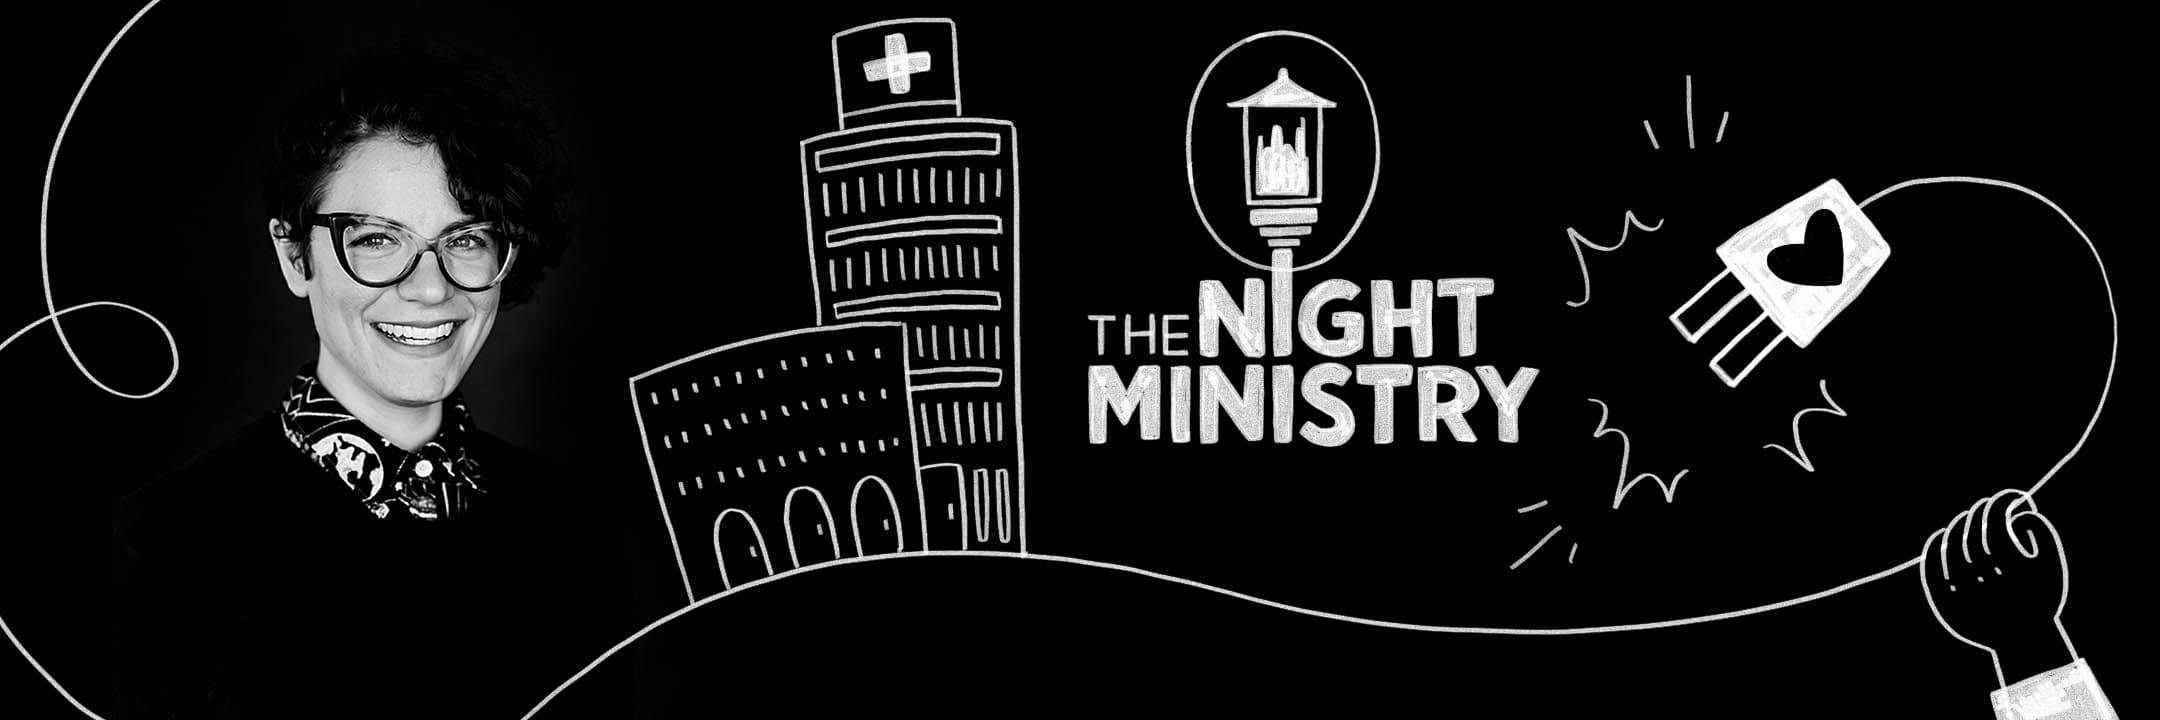 The Night Ministry charity for Giving Tuesday